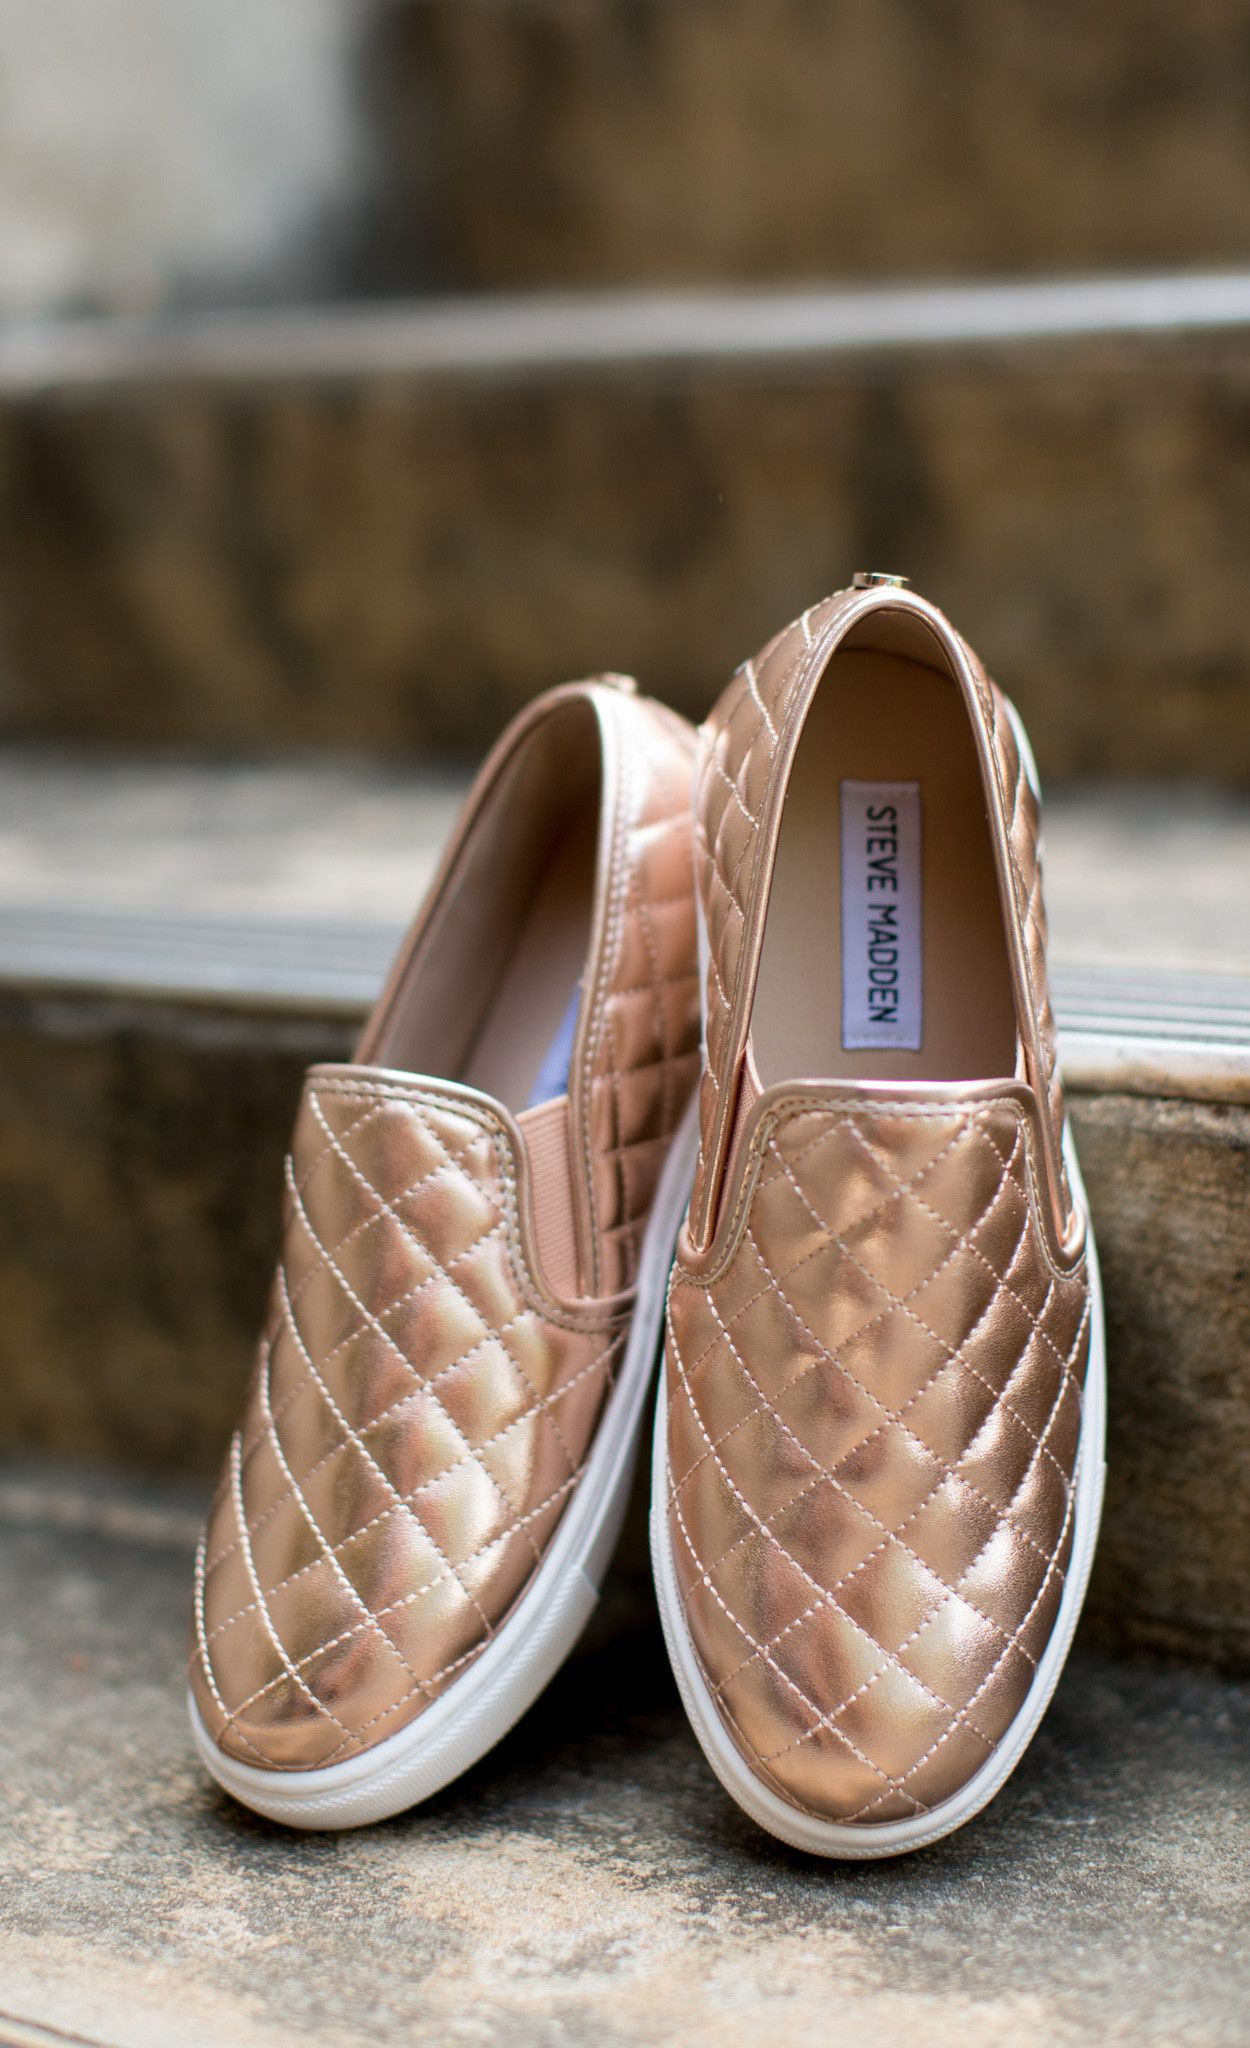 Steve Madden Copper Lifestyle Shoes outlet wide range of discounts sale online cheap how much n3FhtLNLsZ